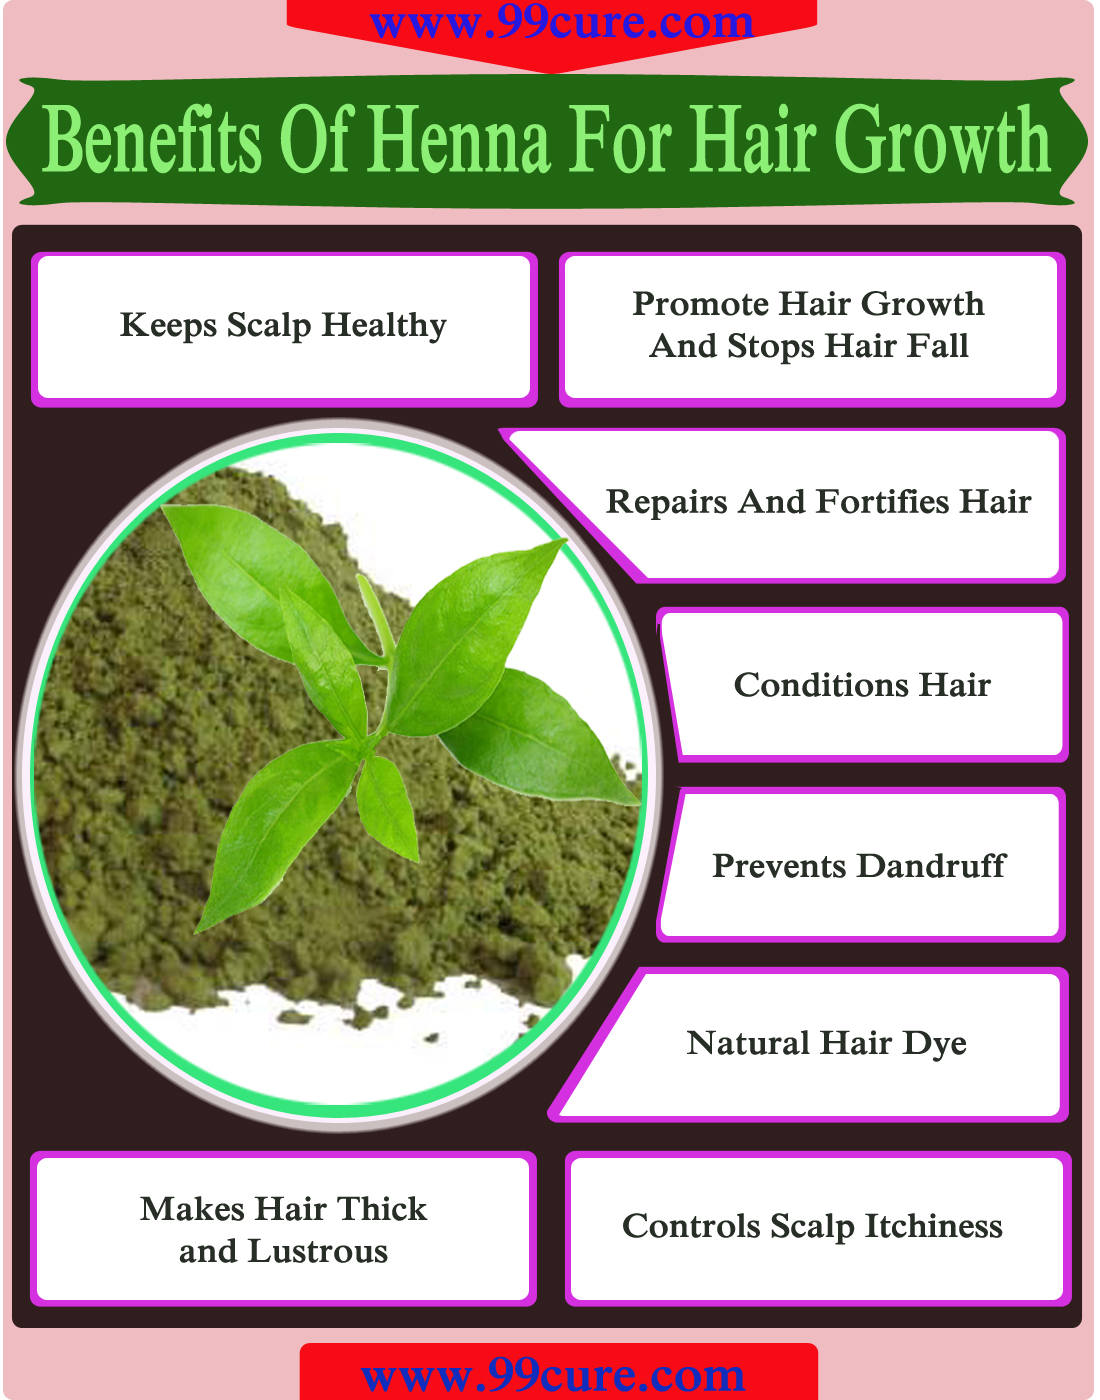 8 Benefits Of Henna For Hair Growth Curebuzz